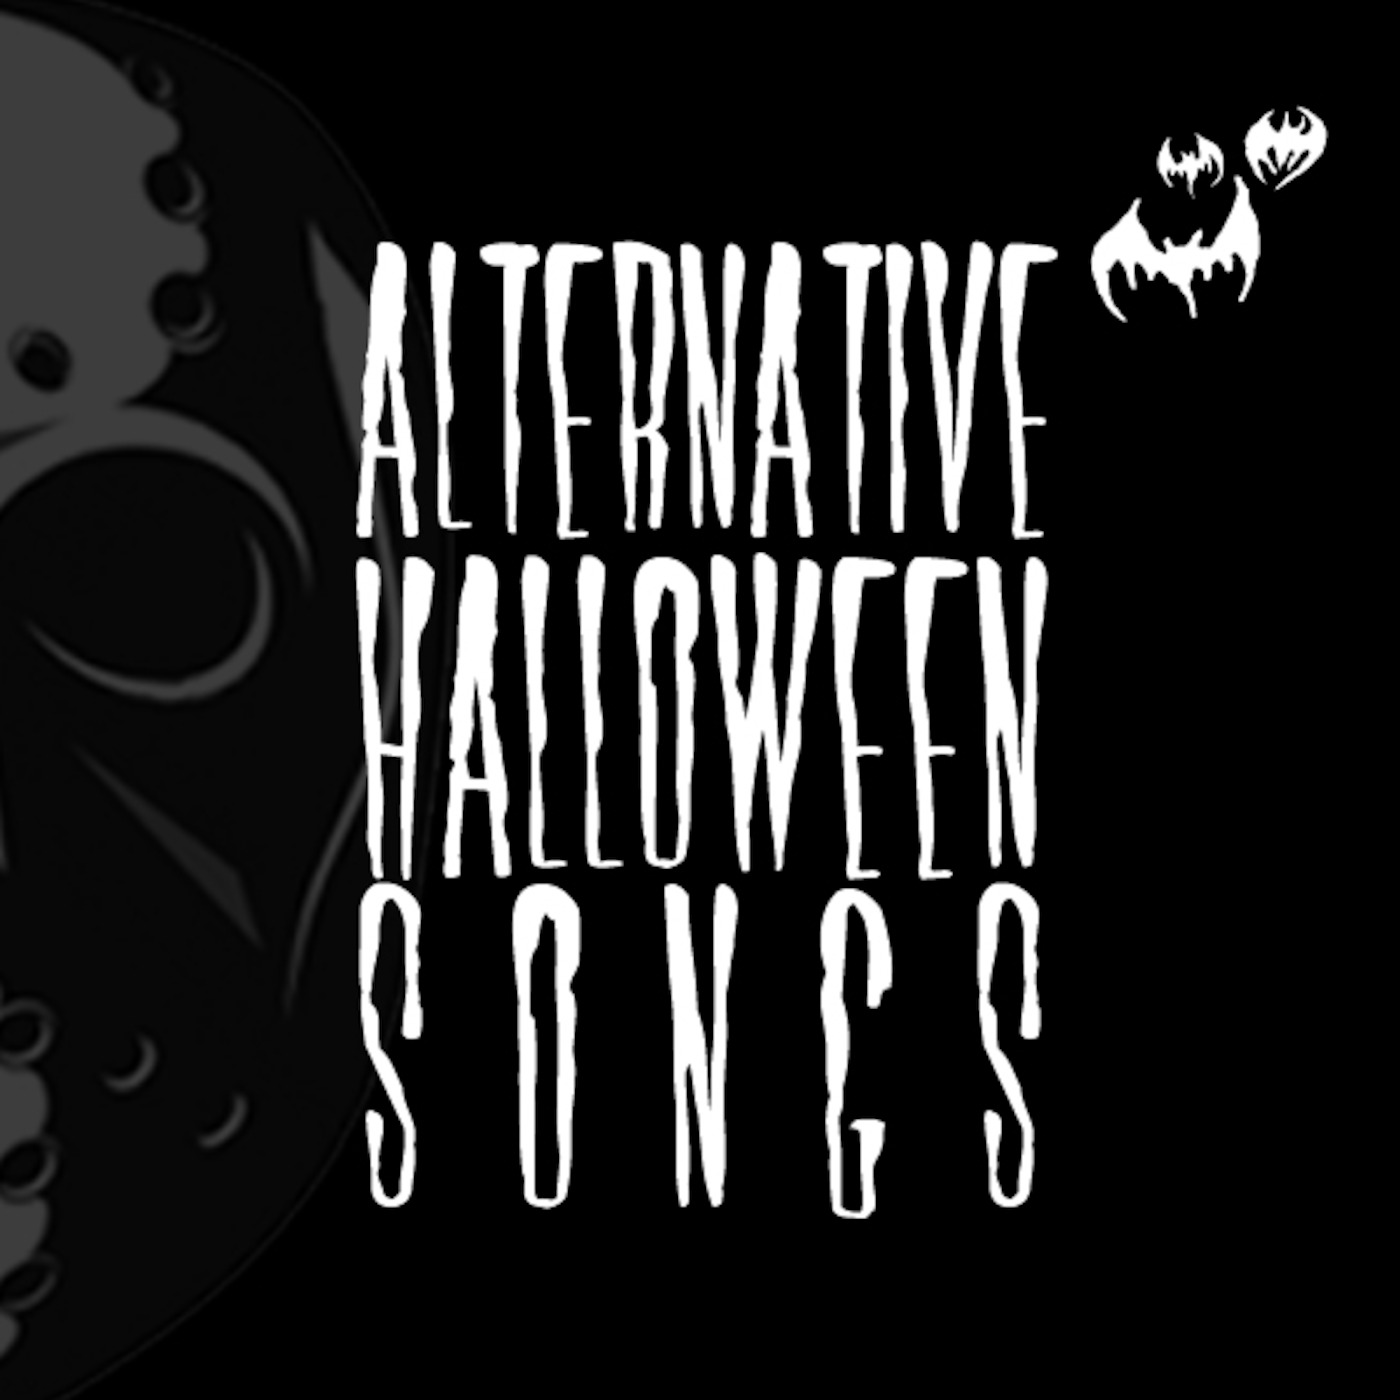 Episode 15: Alternative Halloween Songs Alt Essentials podcast